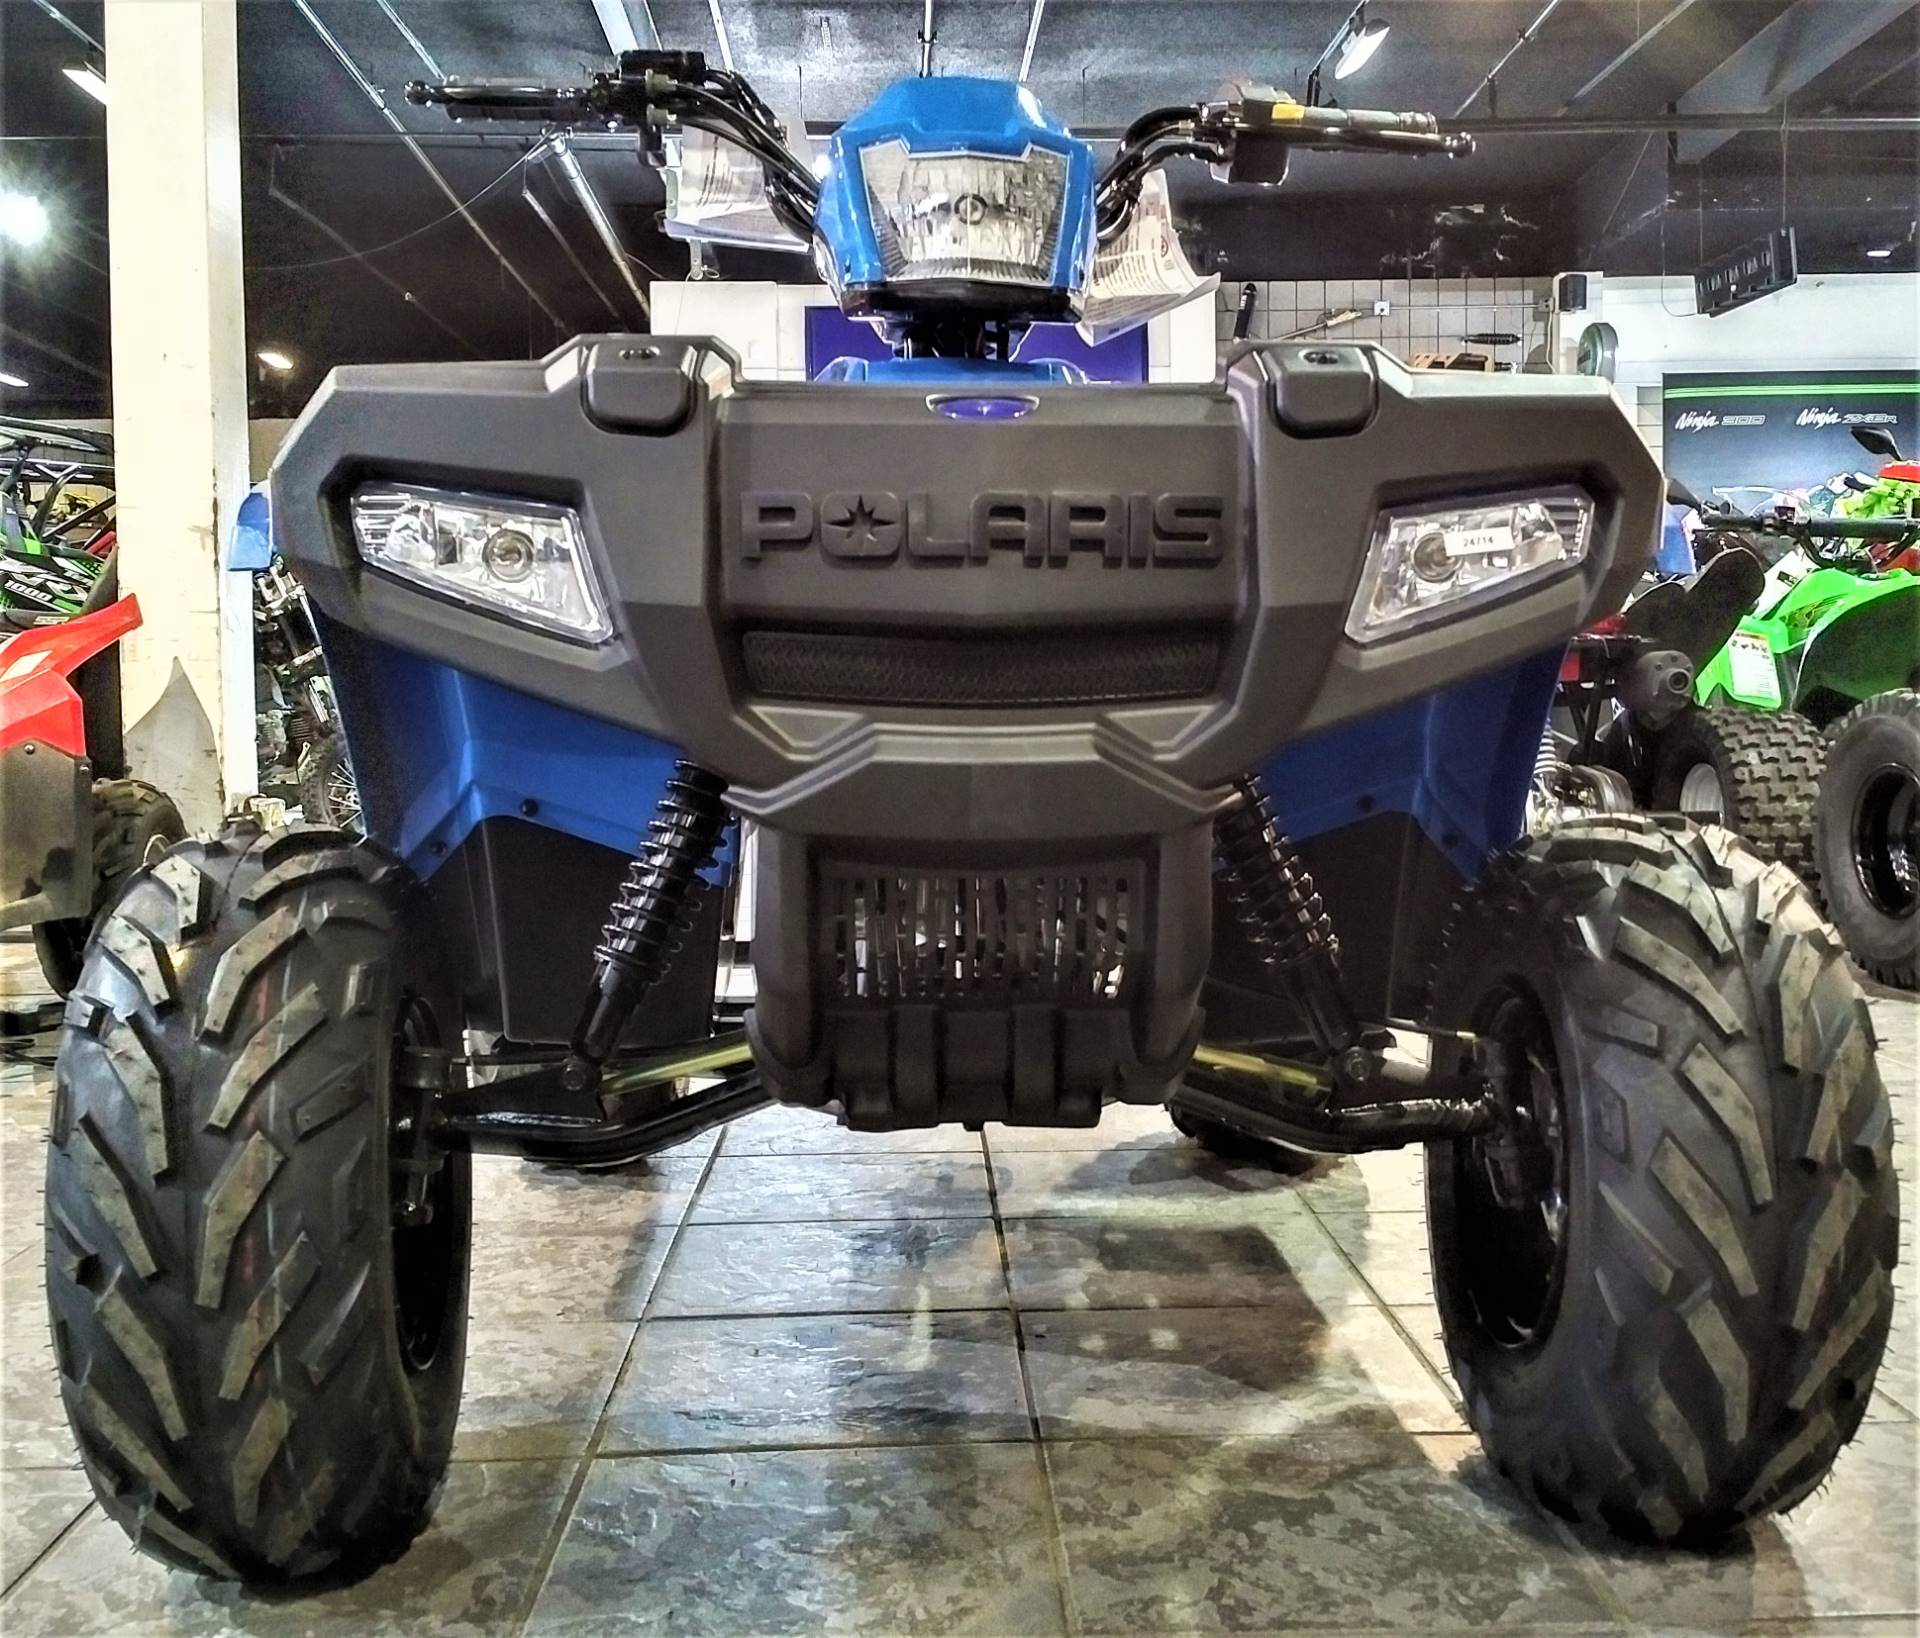 2021 Polaris Sportsman 110 EFI in Salinas, California - Photo 5